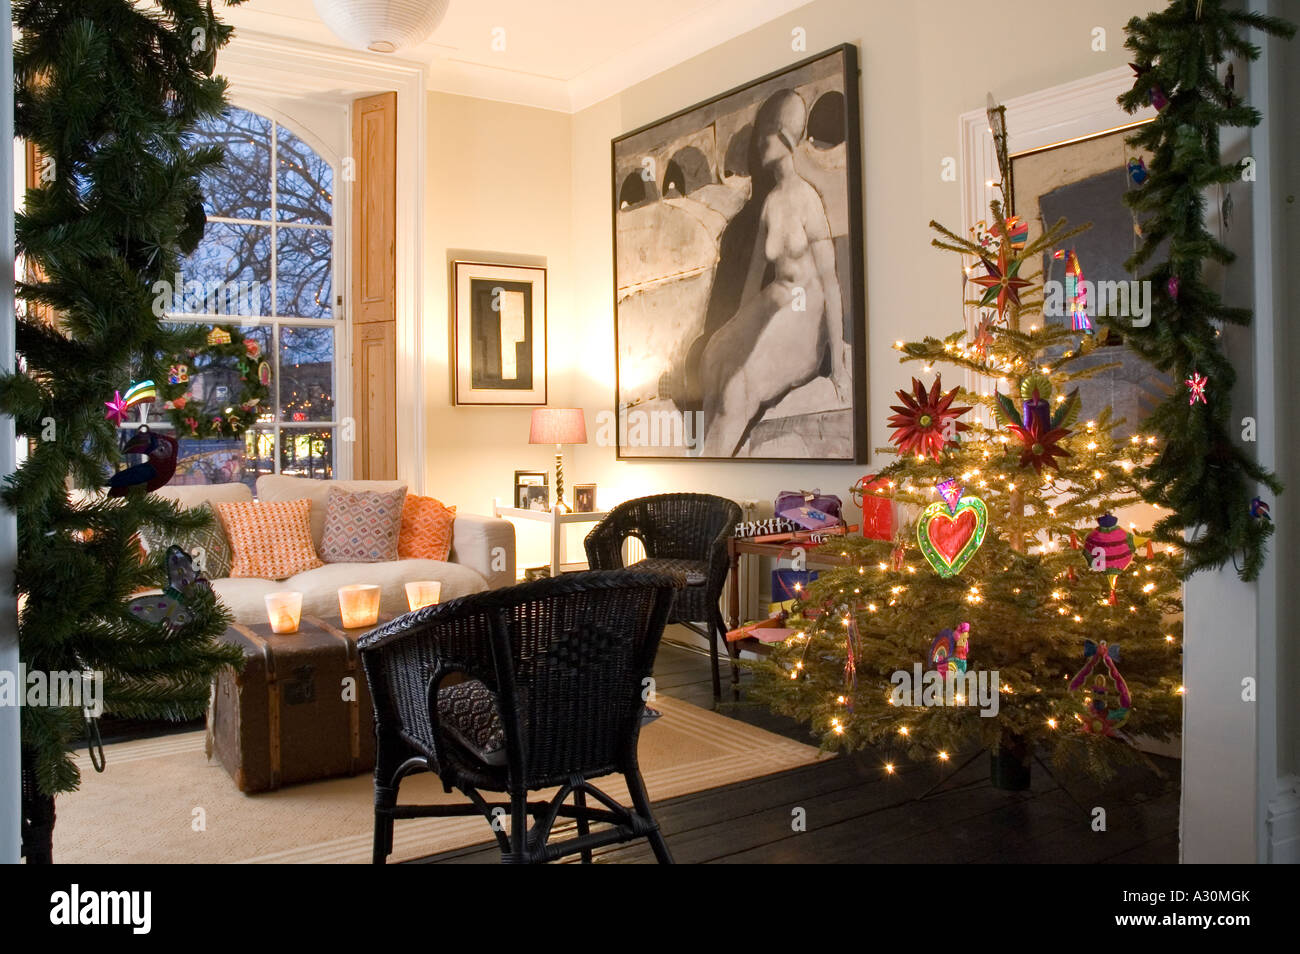 Christmas tree and decorations in the living room of a Georgian townhouse, London - Stock Image